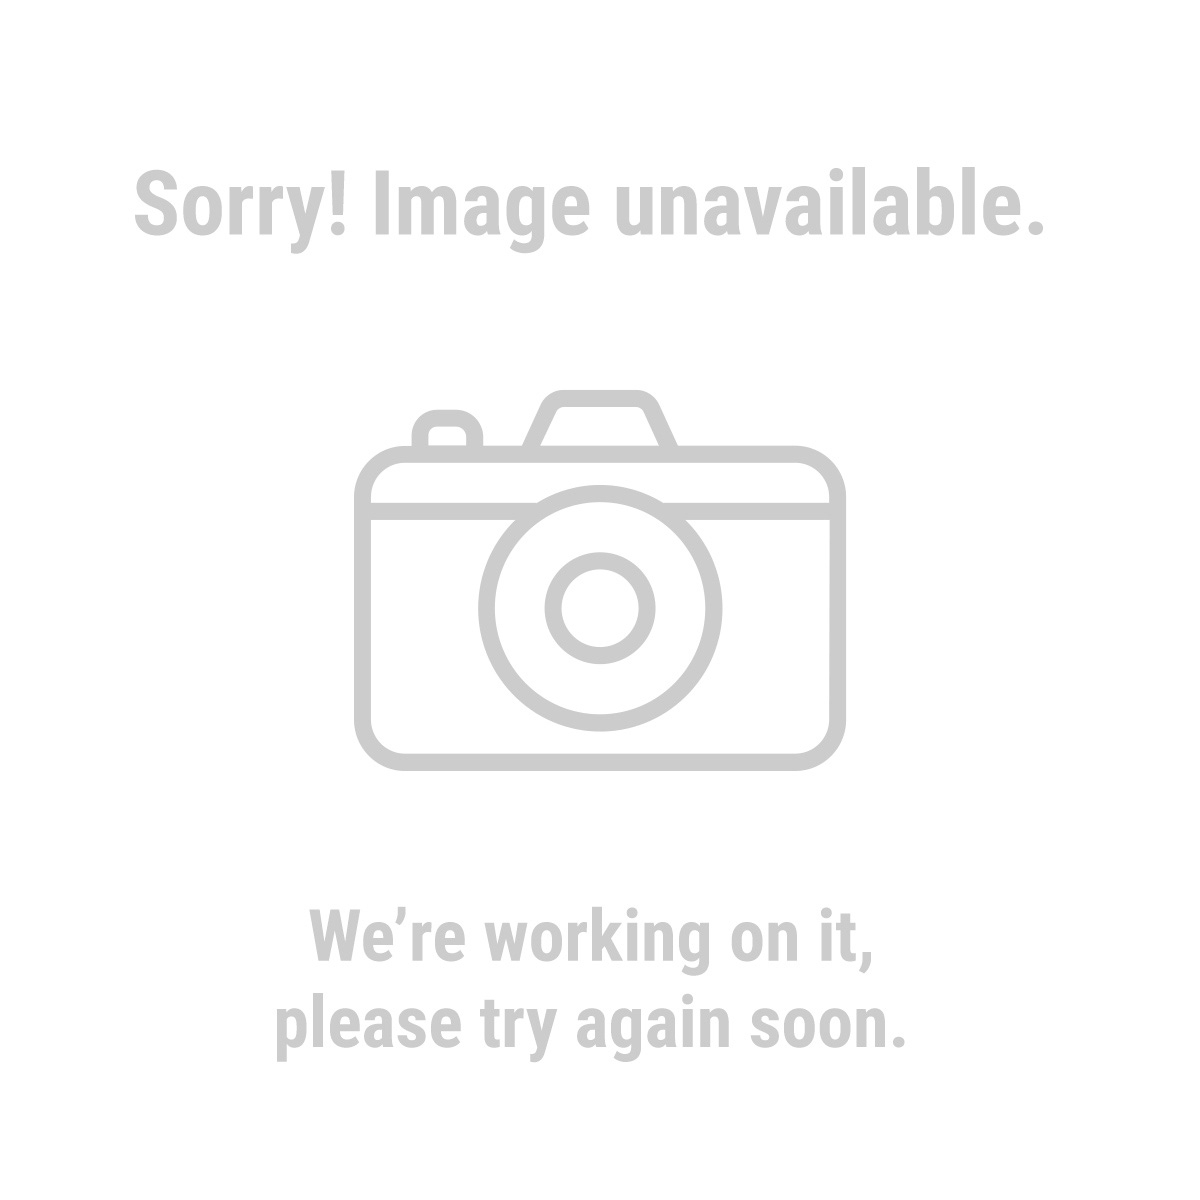 Pittsburgh Professional 96075 6 Piece Electrician's Micro Screwdriver Set